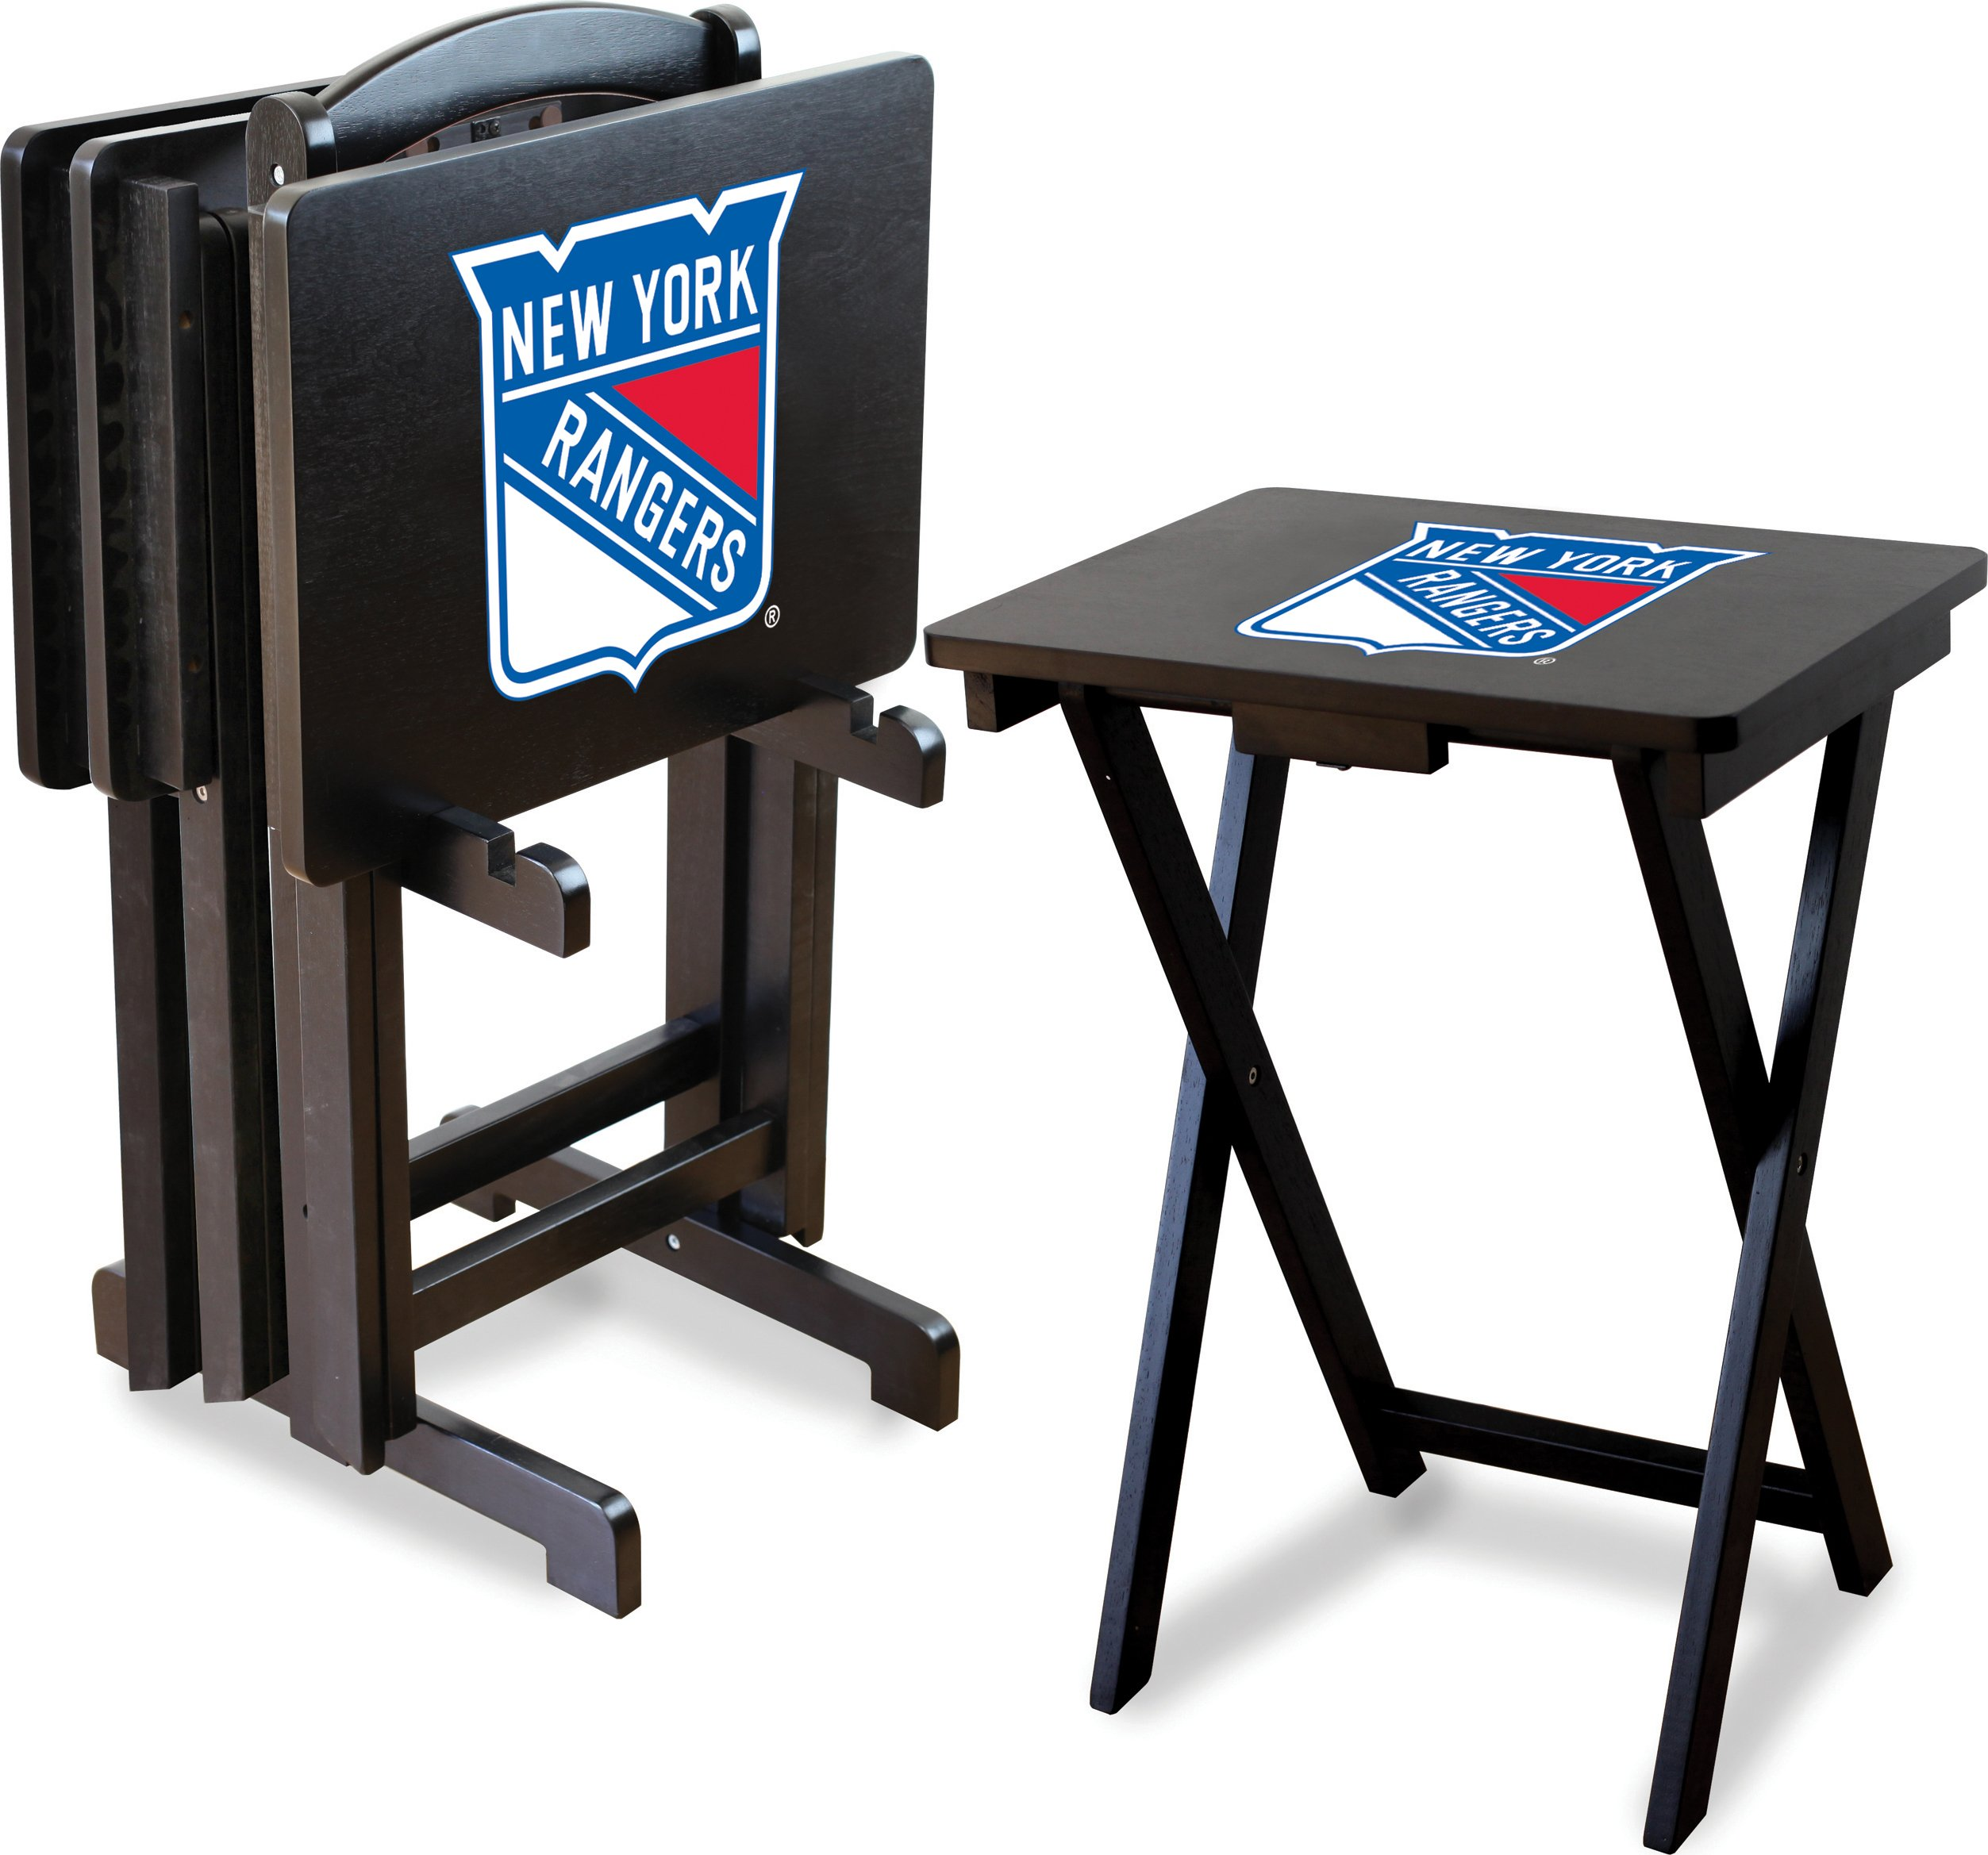 Imperial Officially Licensed NHL Merchandise: Foldable Wood TV Tray Table Set with Stand, New York Rangers by Imperial